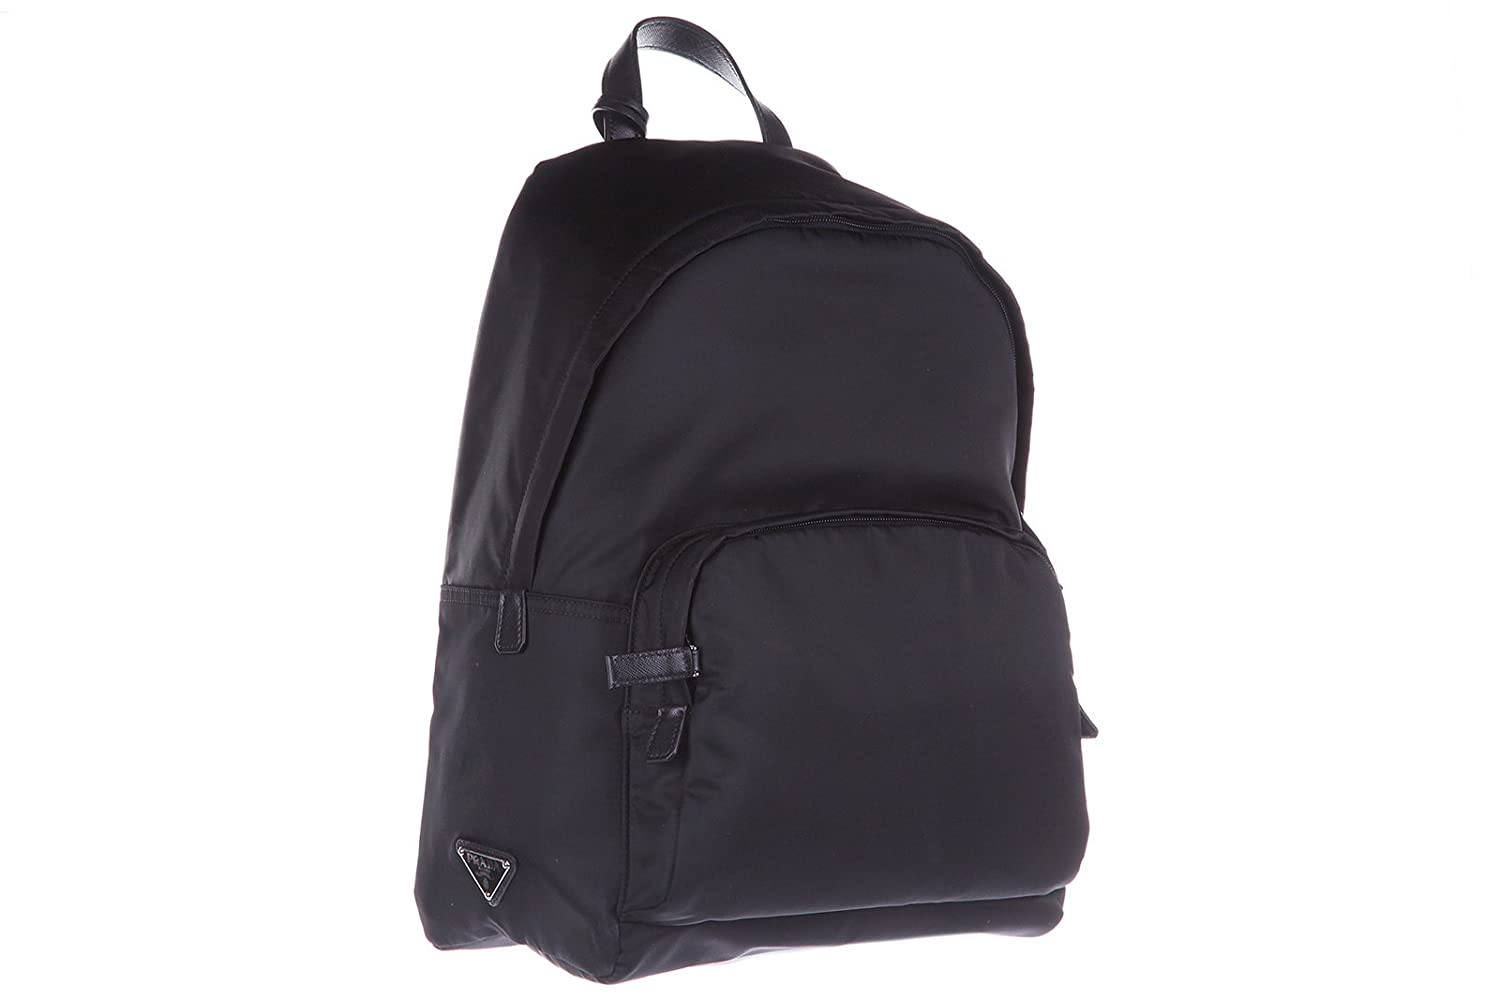 207a53368c8605 Prada men's Nylon rucksack backpack travel montagn black: Amazon.co.uk:  Shoes & Bags